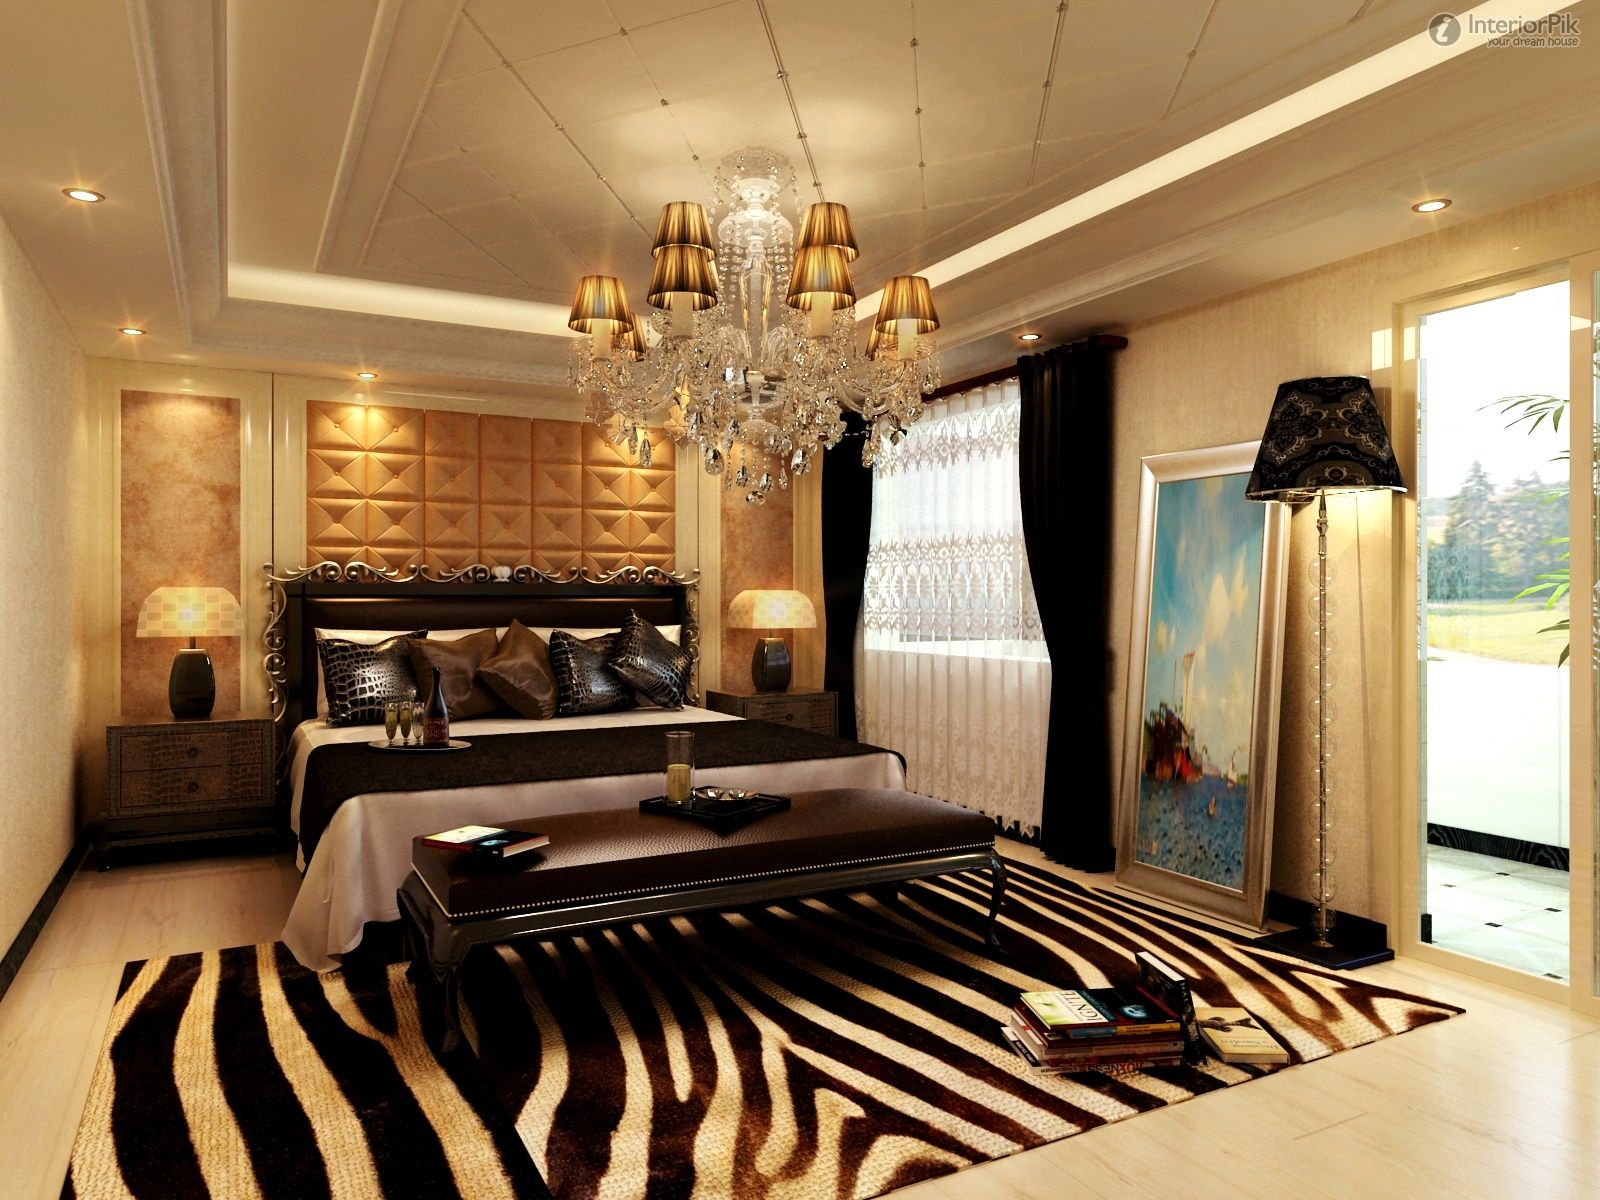 Modern European Style Master Bedroom Ceiling Decoration Ideas ... on kitchen lighting ideas, classic bedroom design ideas, modern rustic bedroom ideas, french country bedroom ideas, glitter bedroom ideas, european beds, european living room furniture, traditional bedroom ideas, european bedroom design, european style living room, european kitchen ideas, european dining room, european bedroom window treatments, european bedroom style, european rugs, european bathroom ideas, european curtains, european bedroom sets, european home,